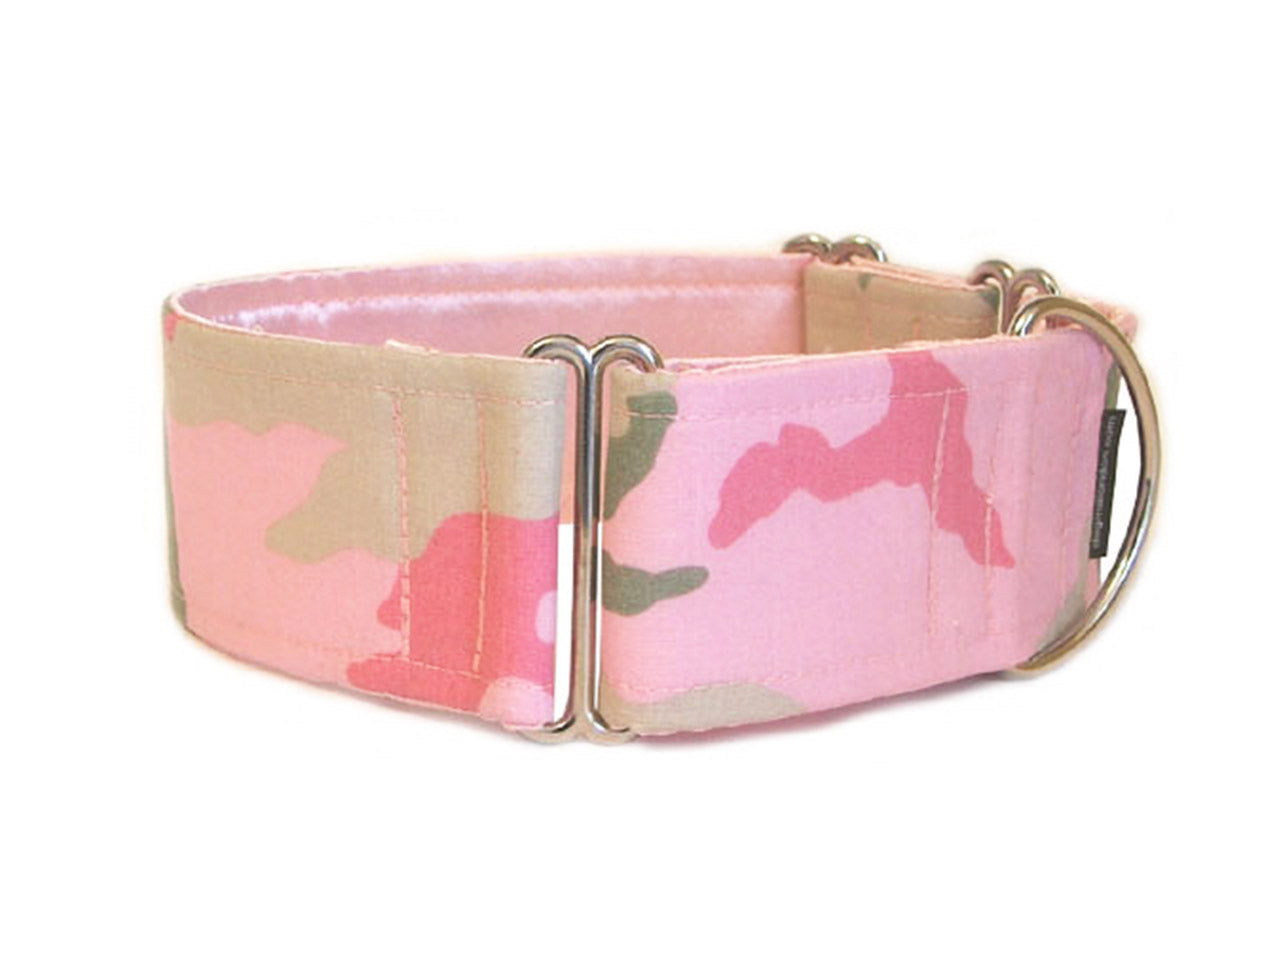 Pretty pink camouflage dog collar will have your pooch ready for action!